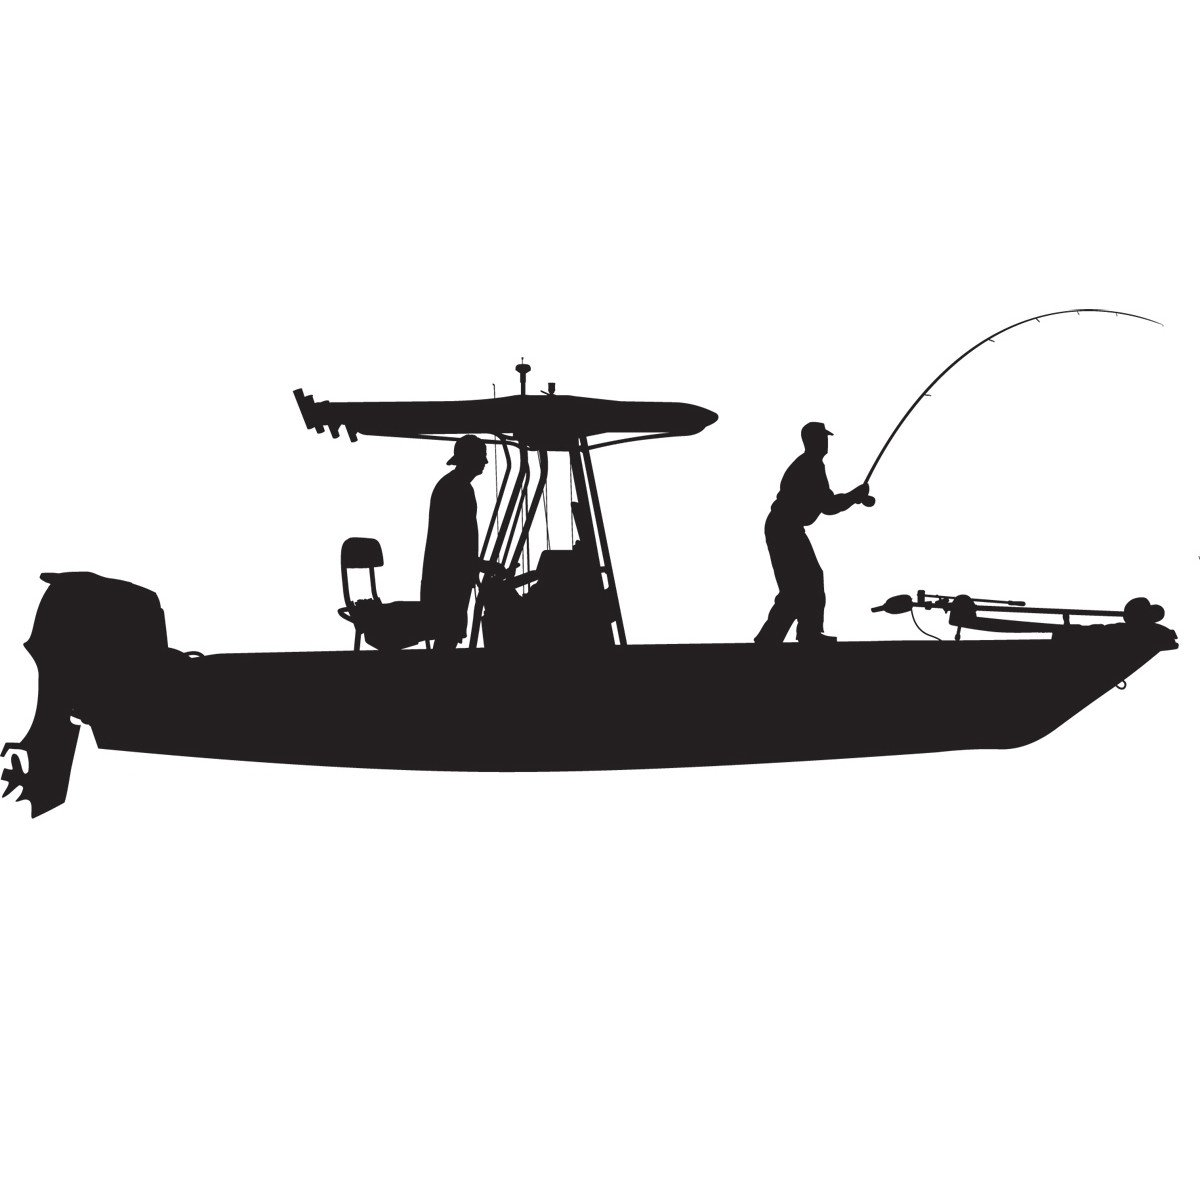 Skiff Life On Twitter Skiff Life T Top Flats Console Fishing Boat Car Decal Stickers Https T Co Rk6fipk8ni Fishing Adhesivestickers